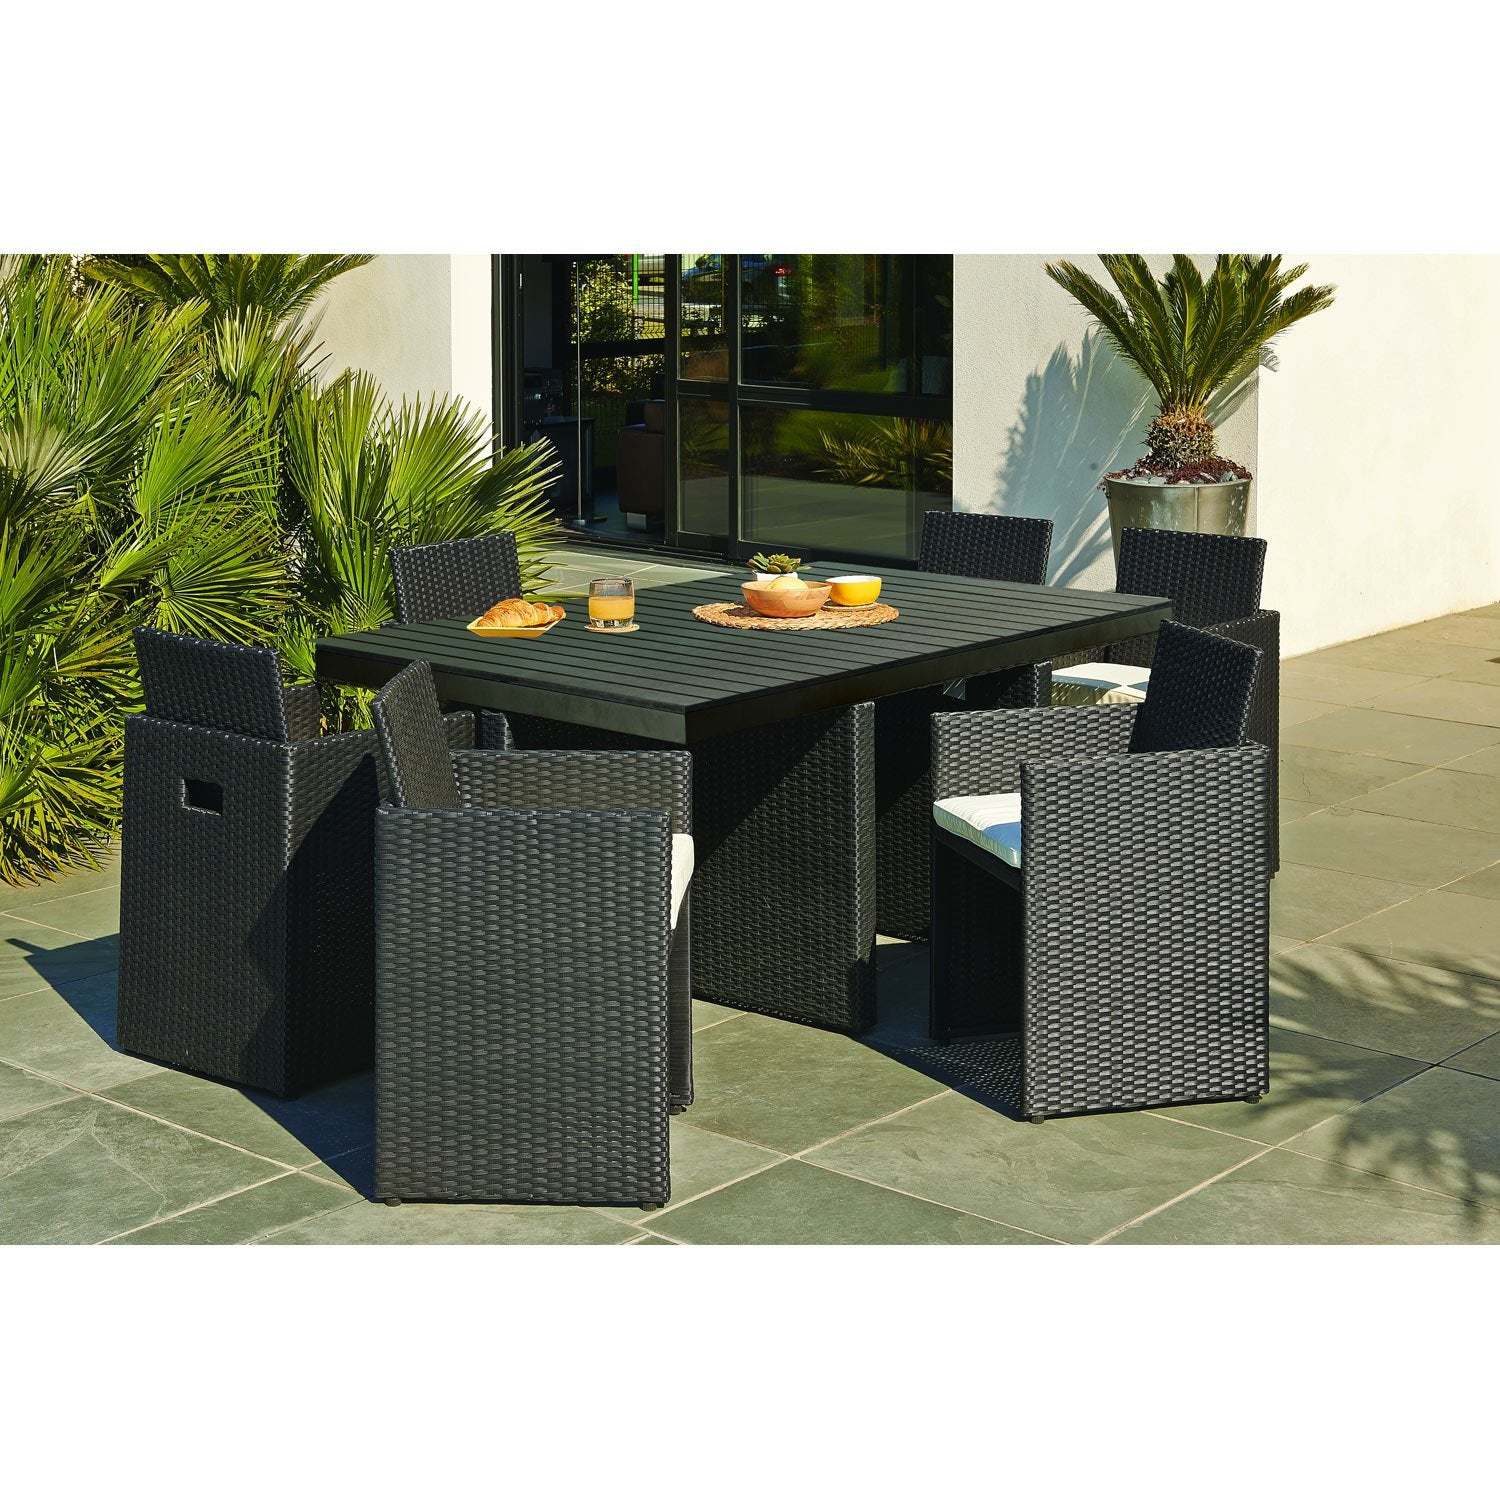 Salon de jardin encastrable r sine tress e noir 1 table for Leroy merlin table jardin